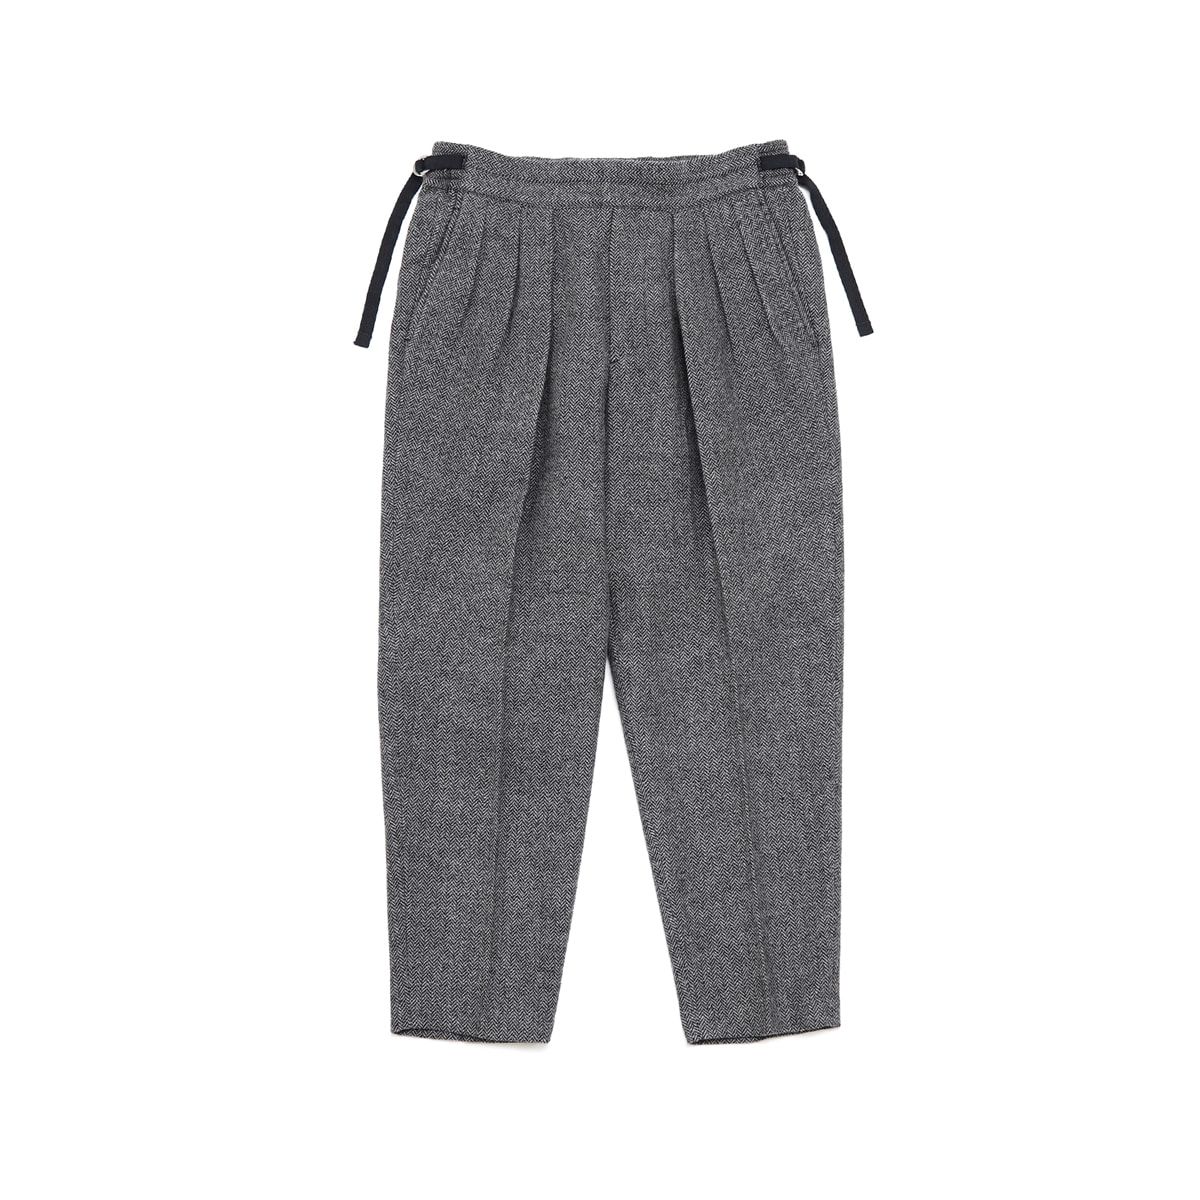 [SAYATOMO] HAKAMA HERRINGBONE PANTS 'GREY'